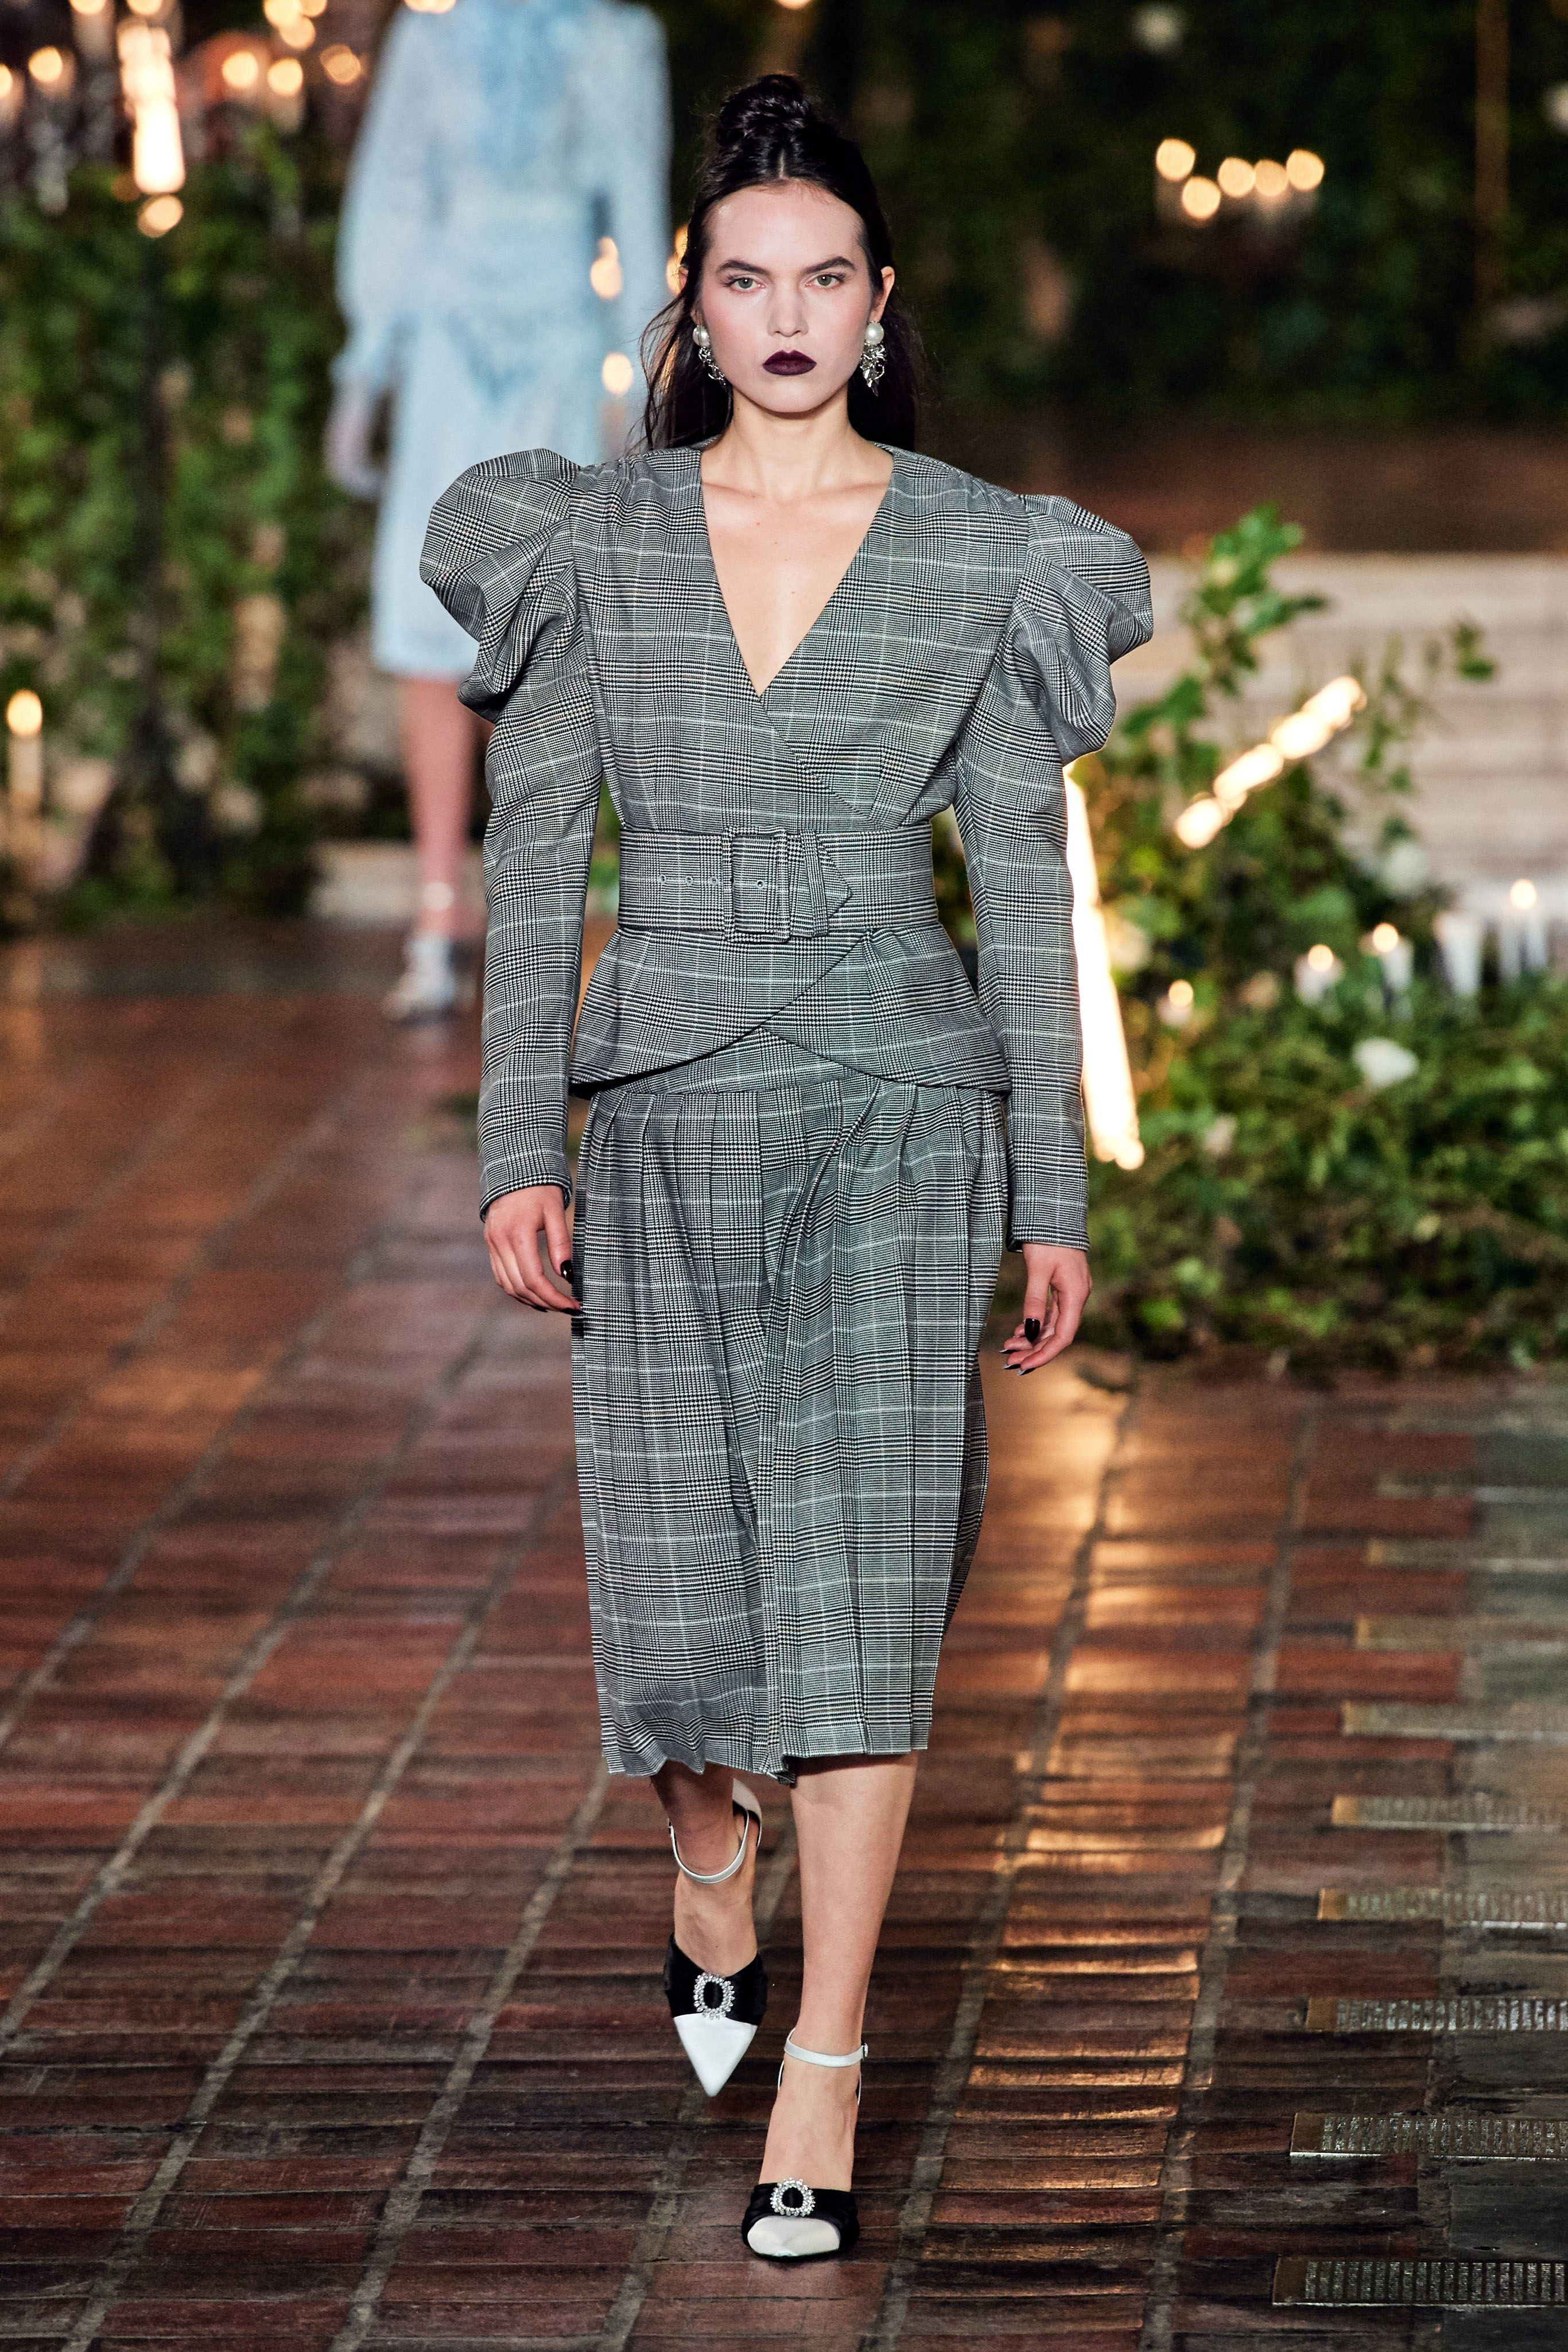 Pleats Thank You In 2020 Fashion Ready To Wear Fashion Show